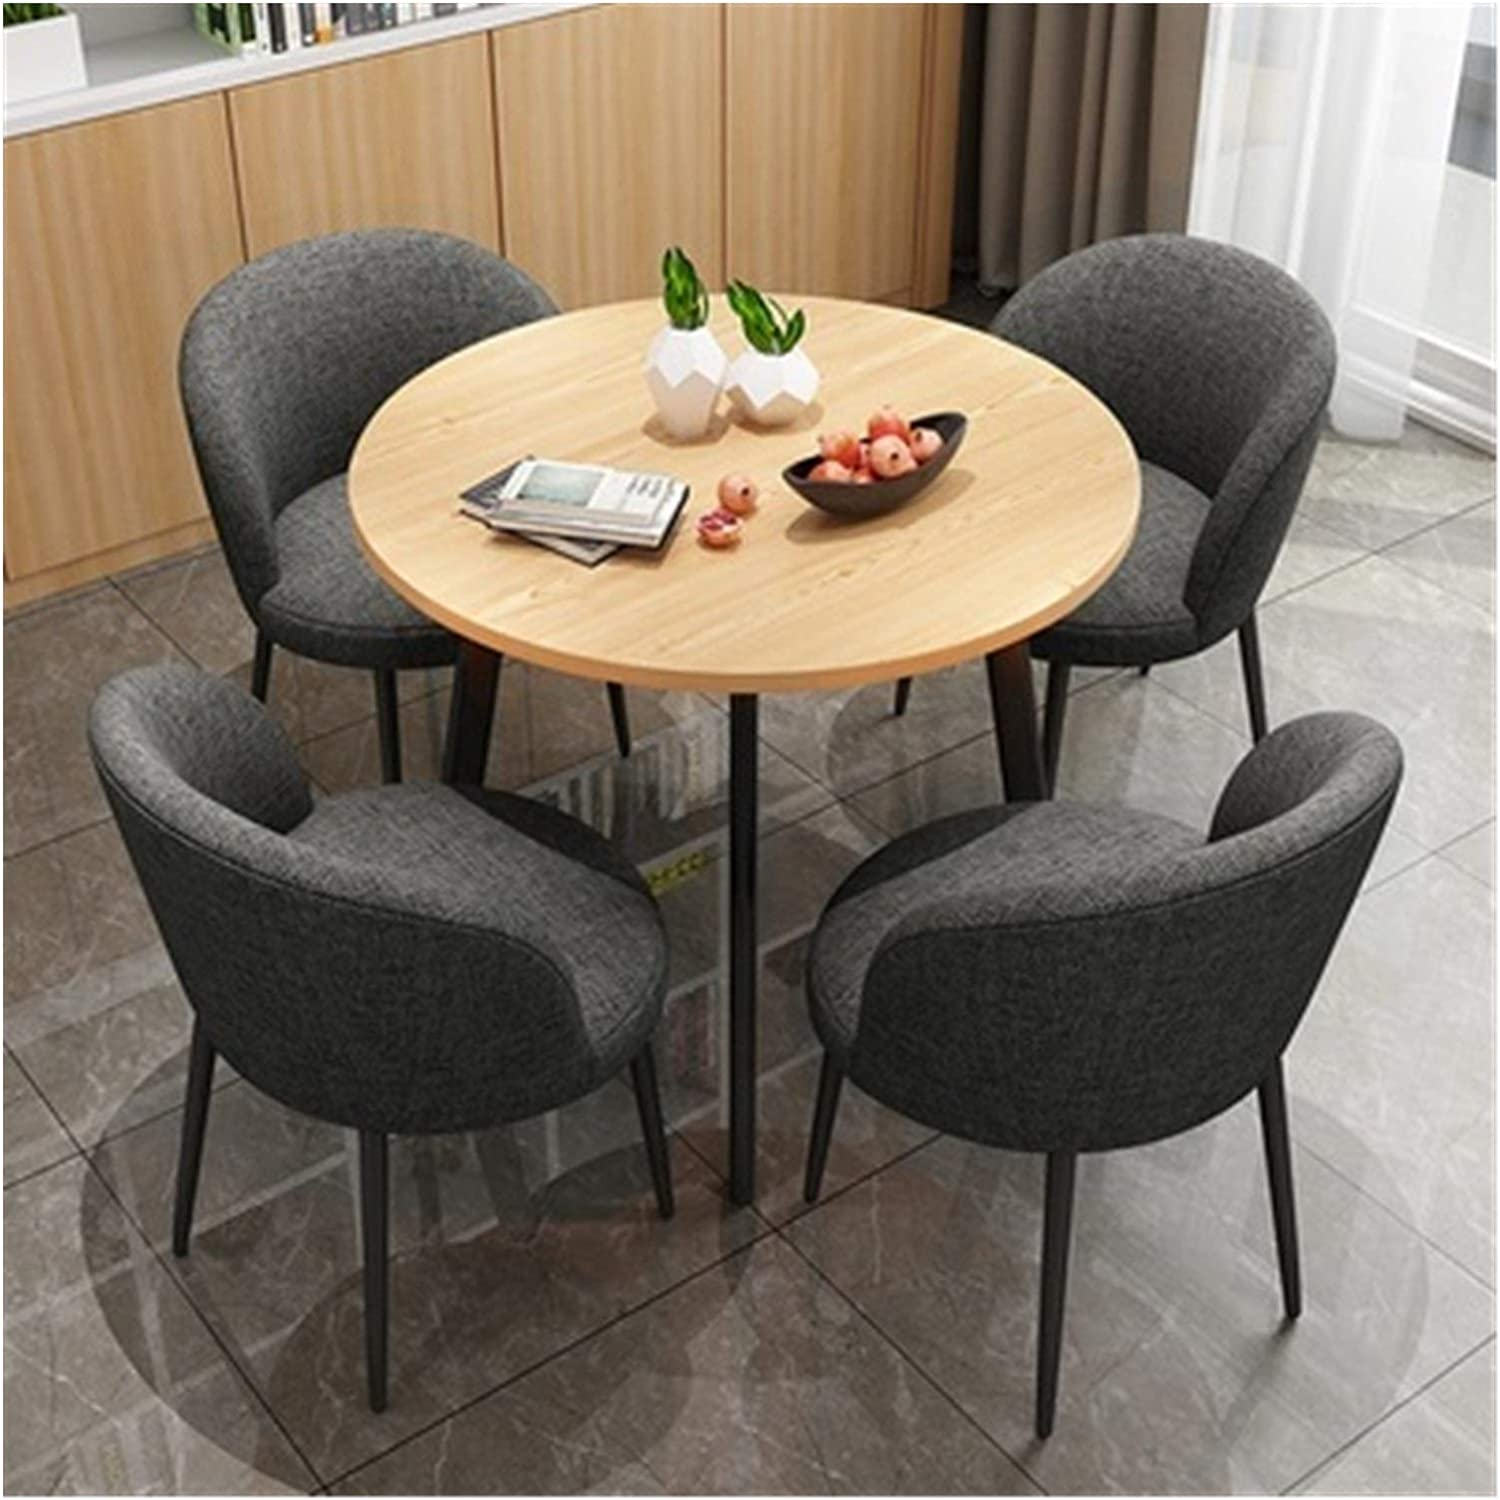 WANGLX Mesa Mall Dining Table Set for Special price a limited time Kitchen Modern Room Tabl and